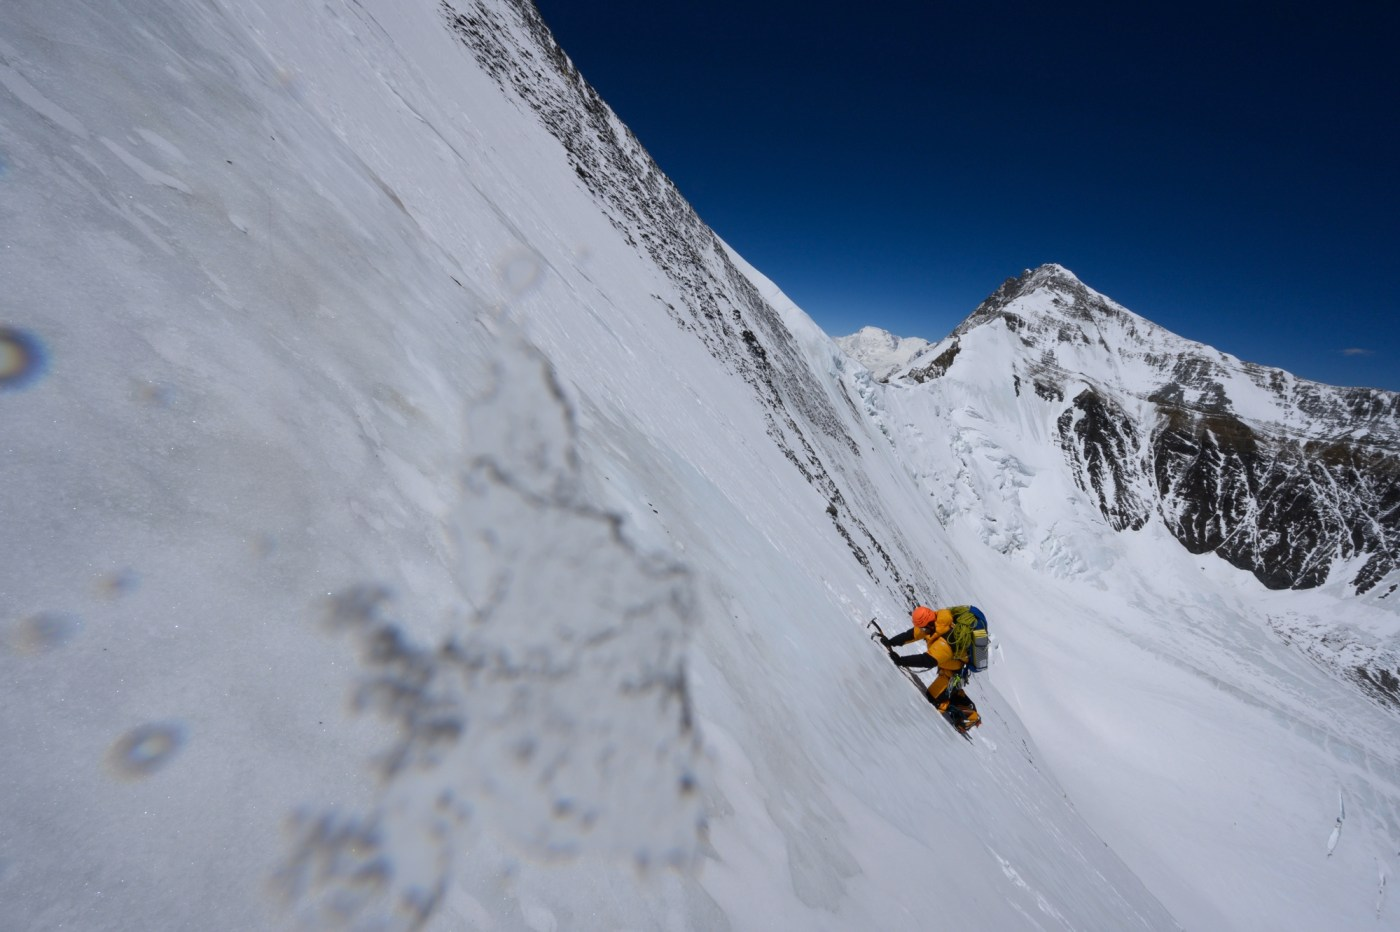 Cory Richards climbing Everest Spring 2019